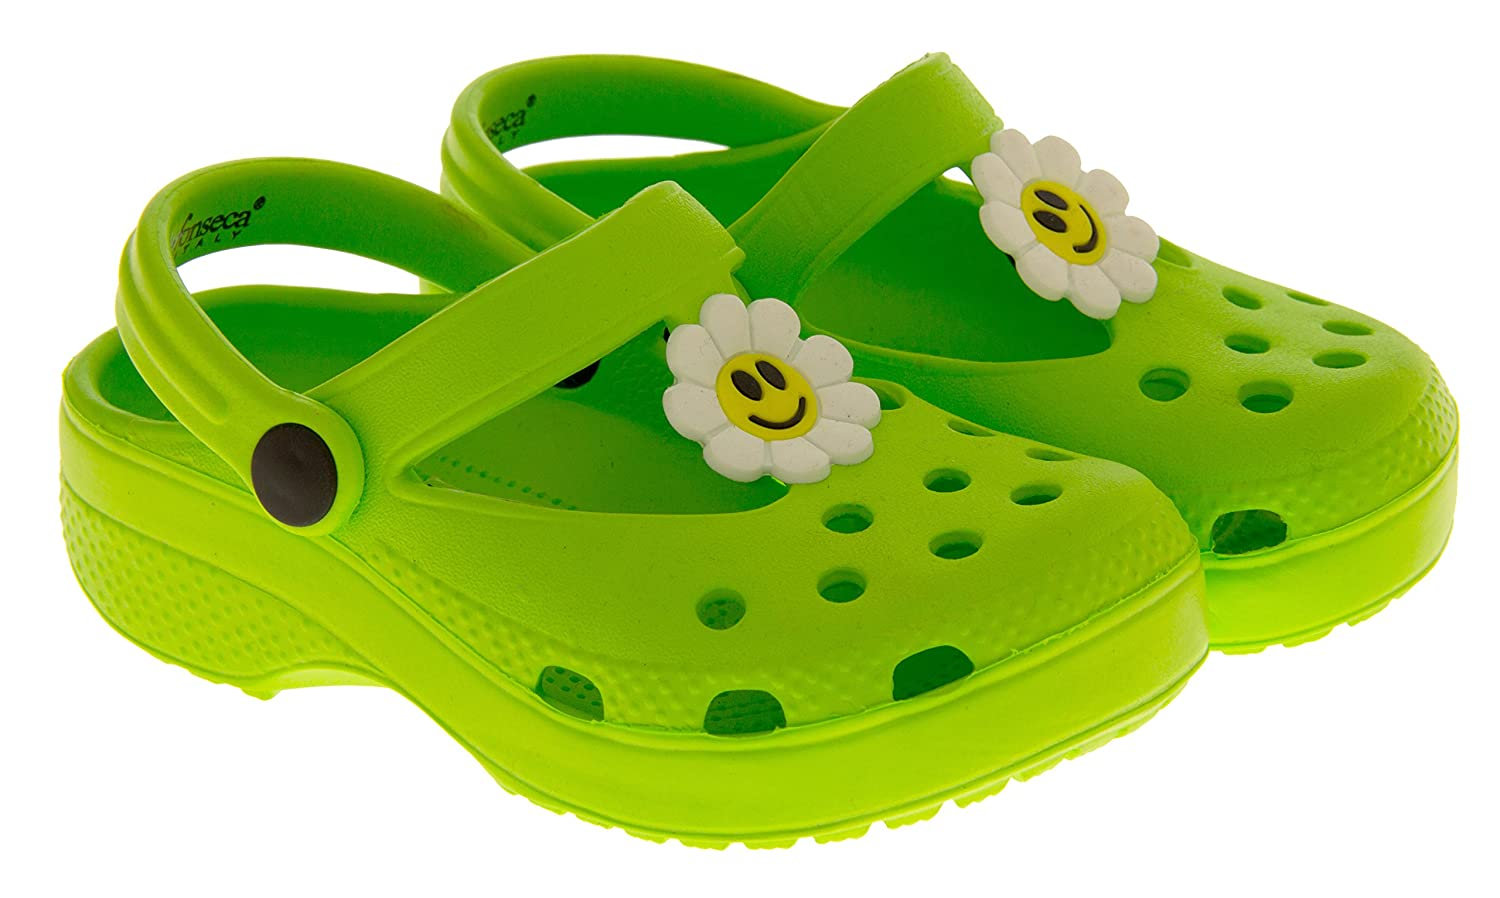 Girls Lightweight Summer Clog Mule Sandals Kids Holiday Shoe Size 7 8 9 10  11: Amazon.co.uk: Shoes & Bags